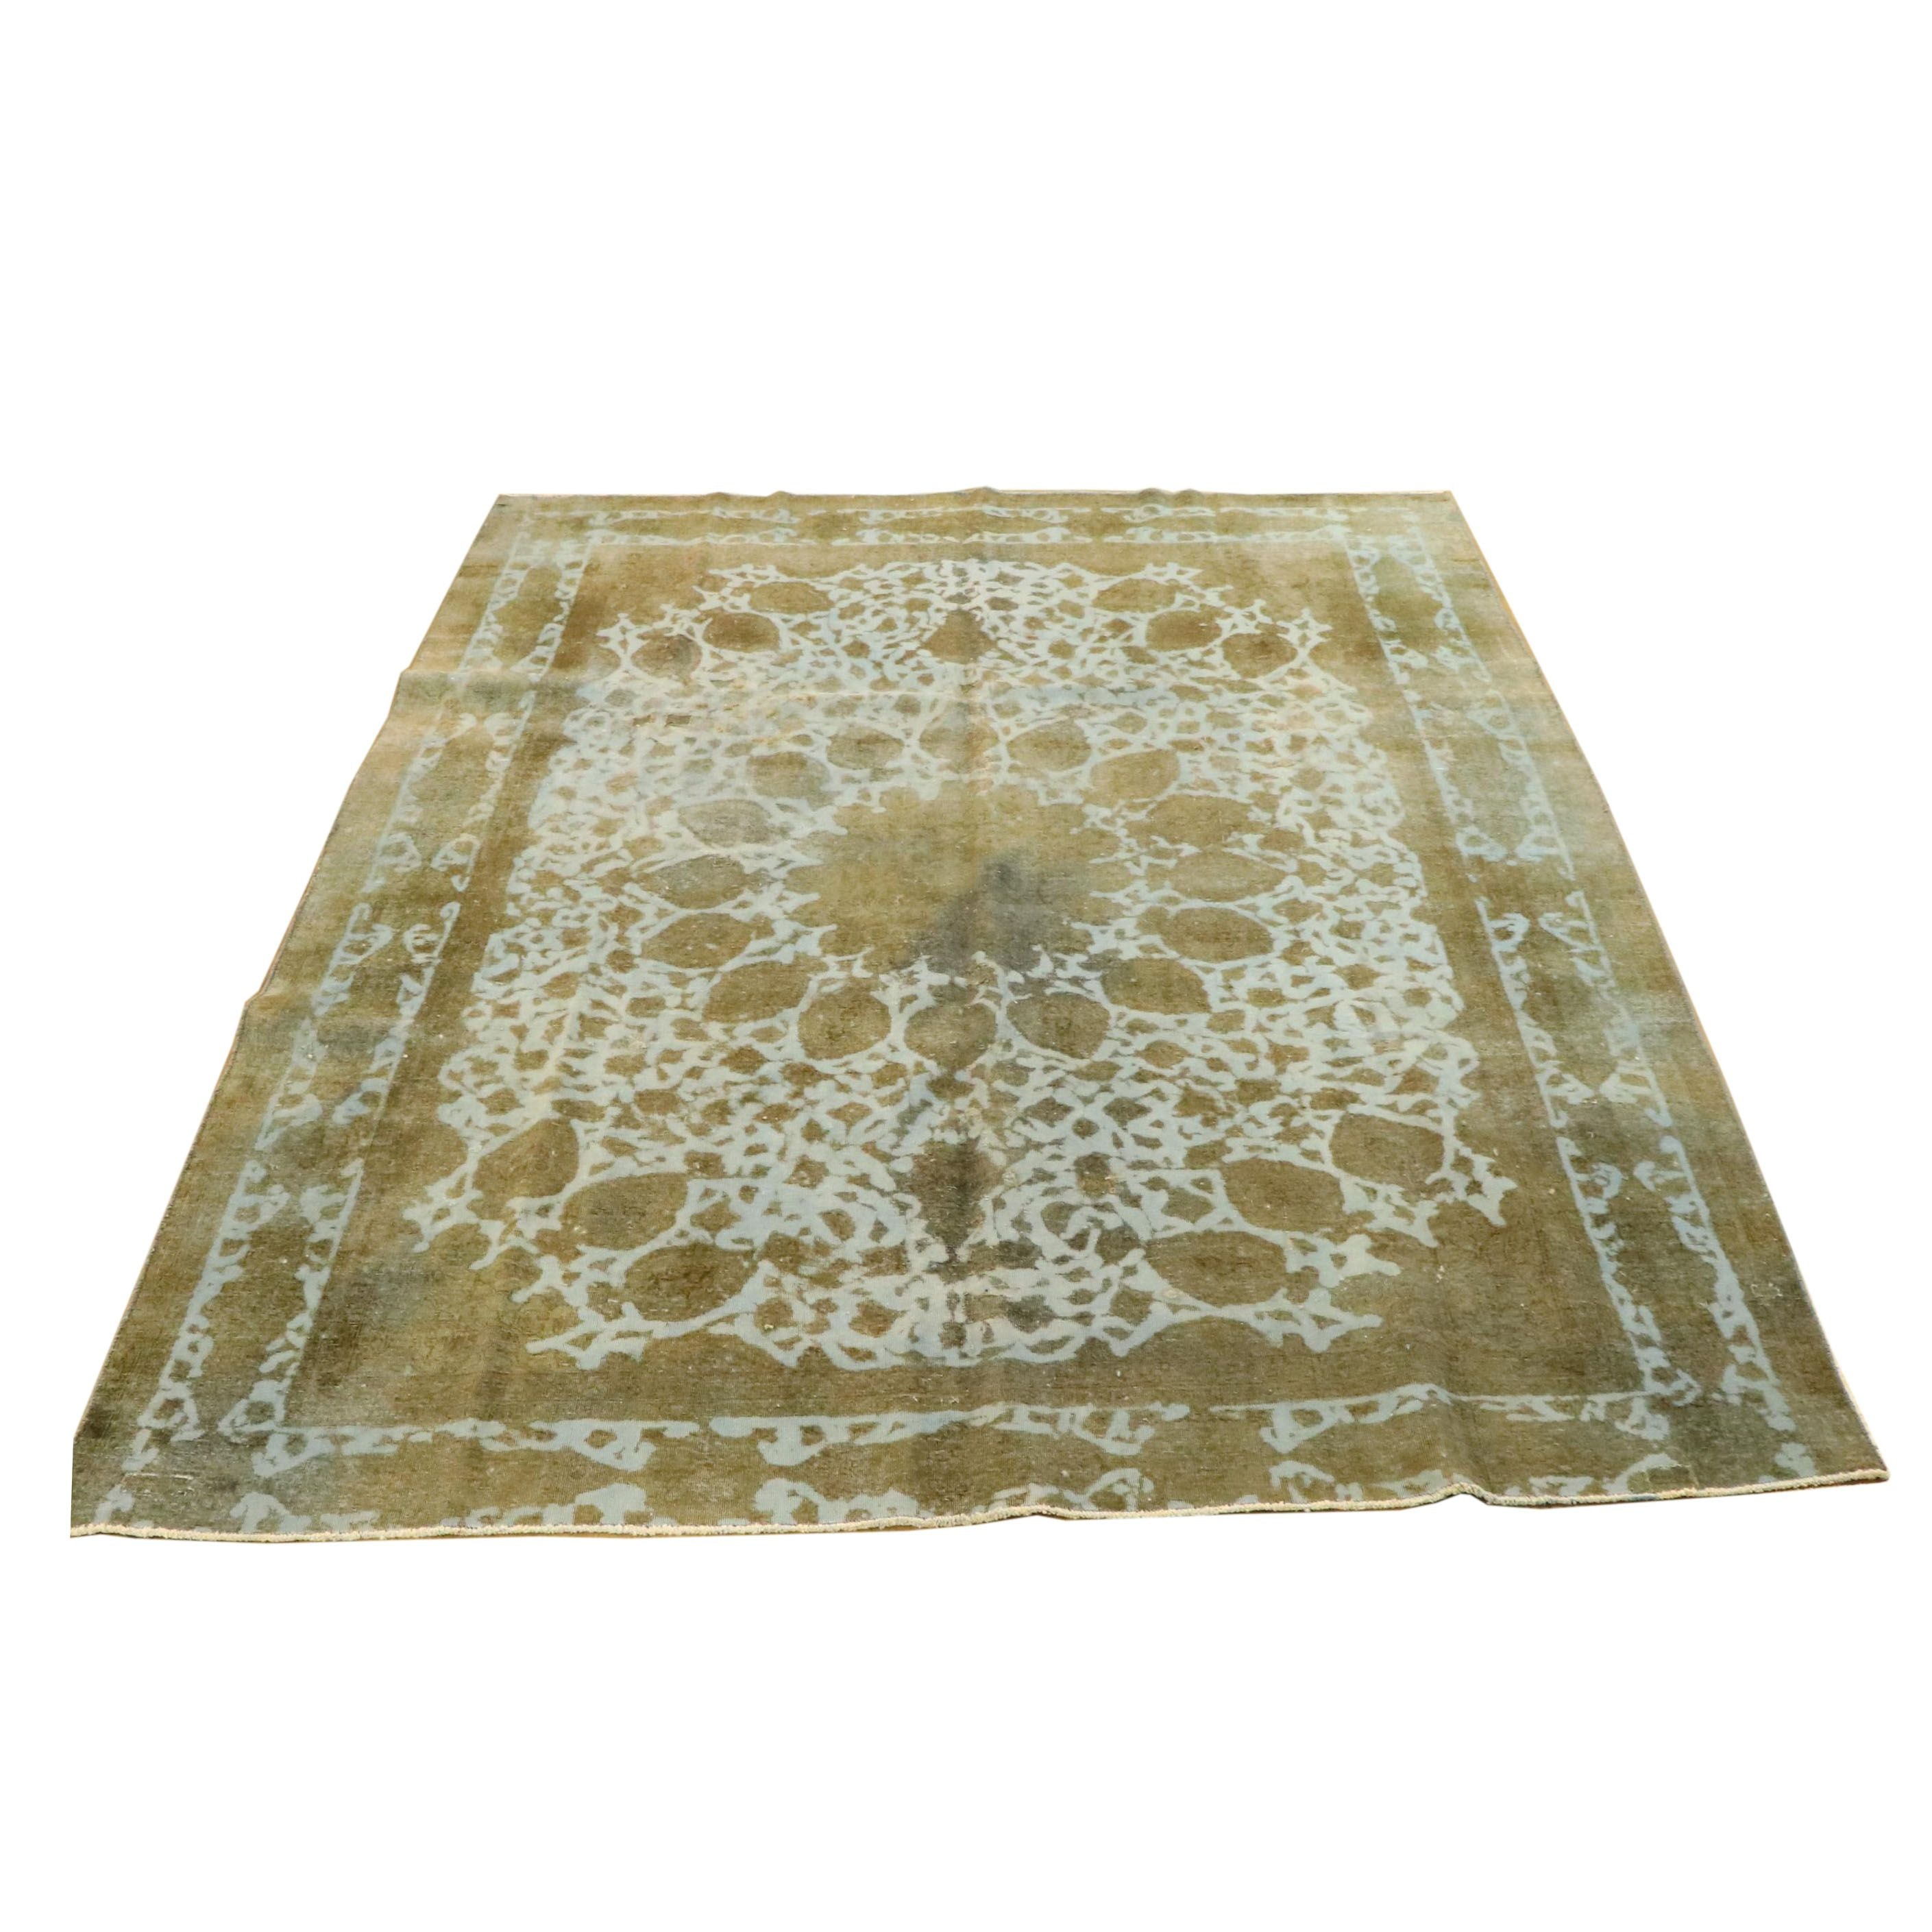 Power-Loomed Overdyed Persian-Style Wool Room Sized Rug